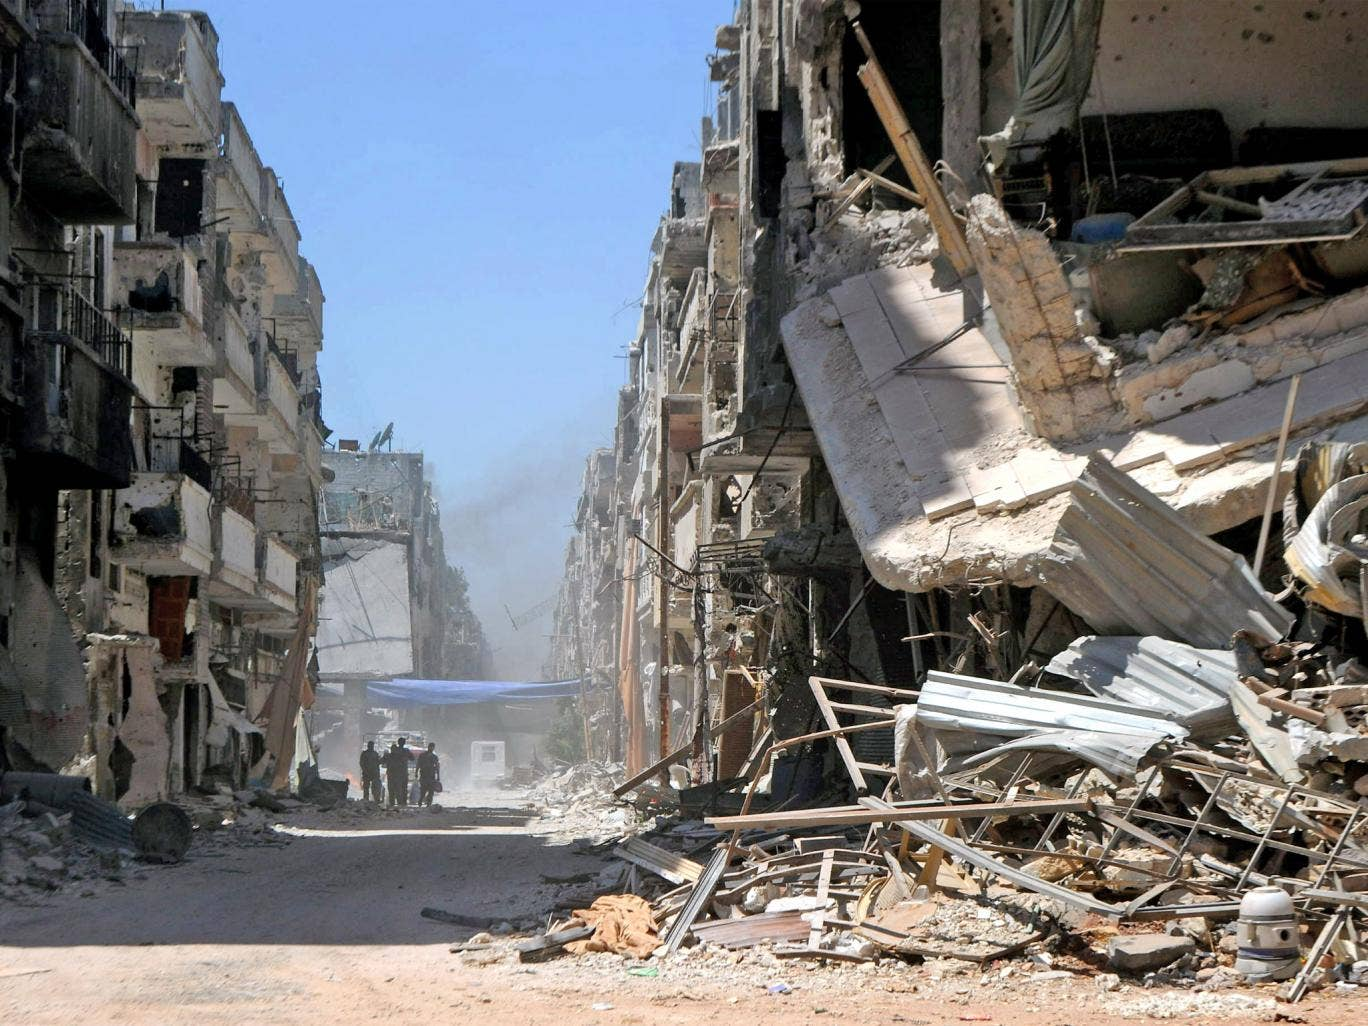 Almost three years since the start of the Syrian conflict, Homs - once a thriving city of more than half a million people - now lies in ruin